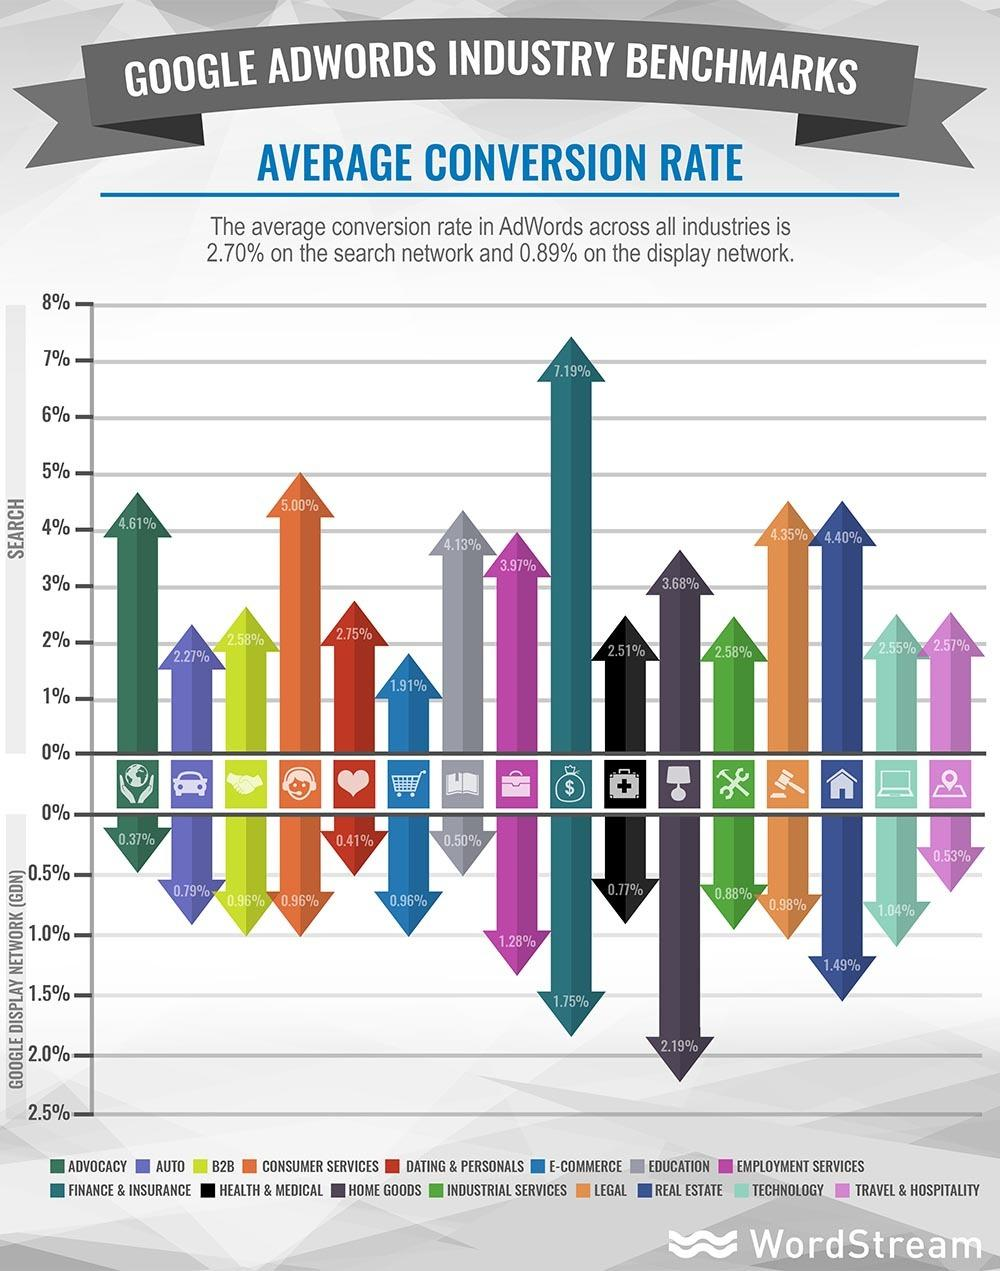 Google Ads Average Conversion Rate Industry Benchmarks